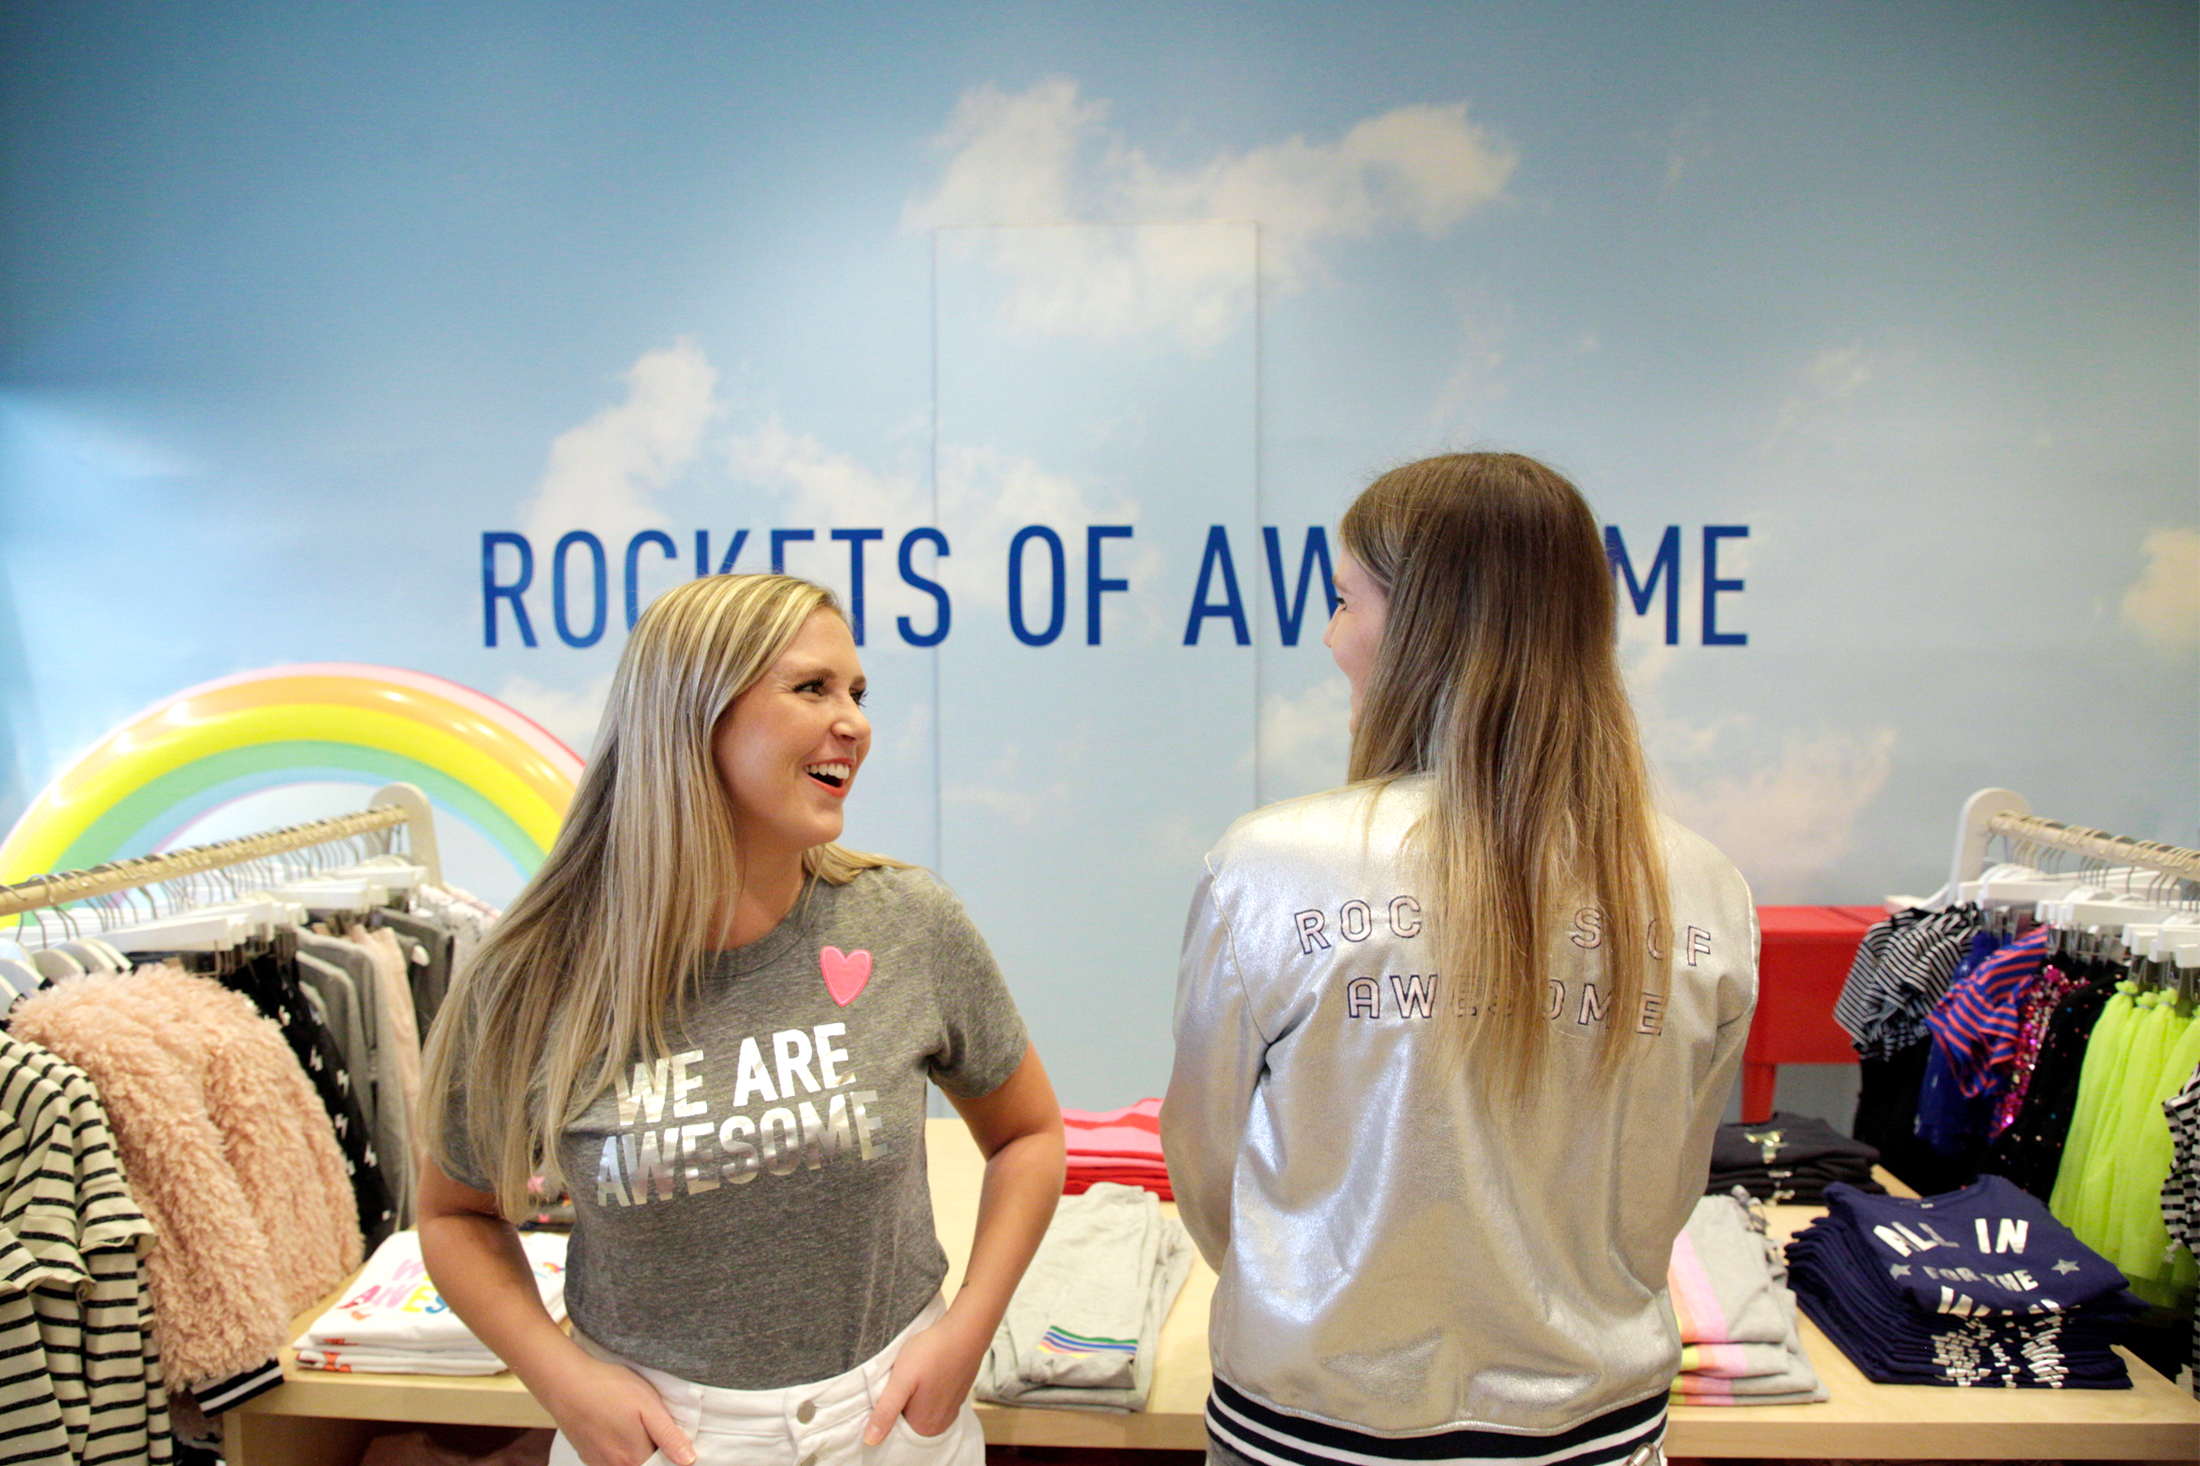 Rockets of Awesome Pop-Up